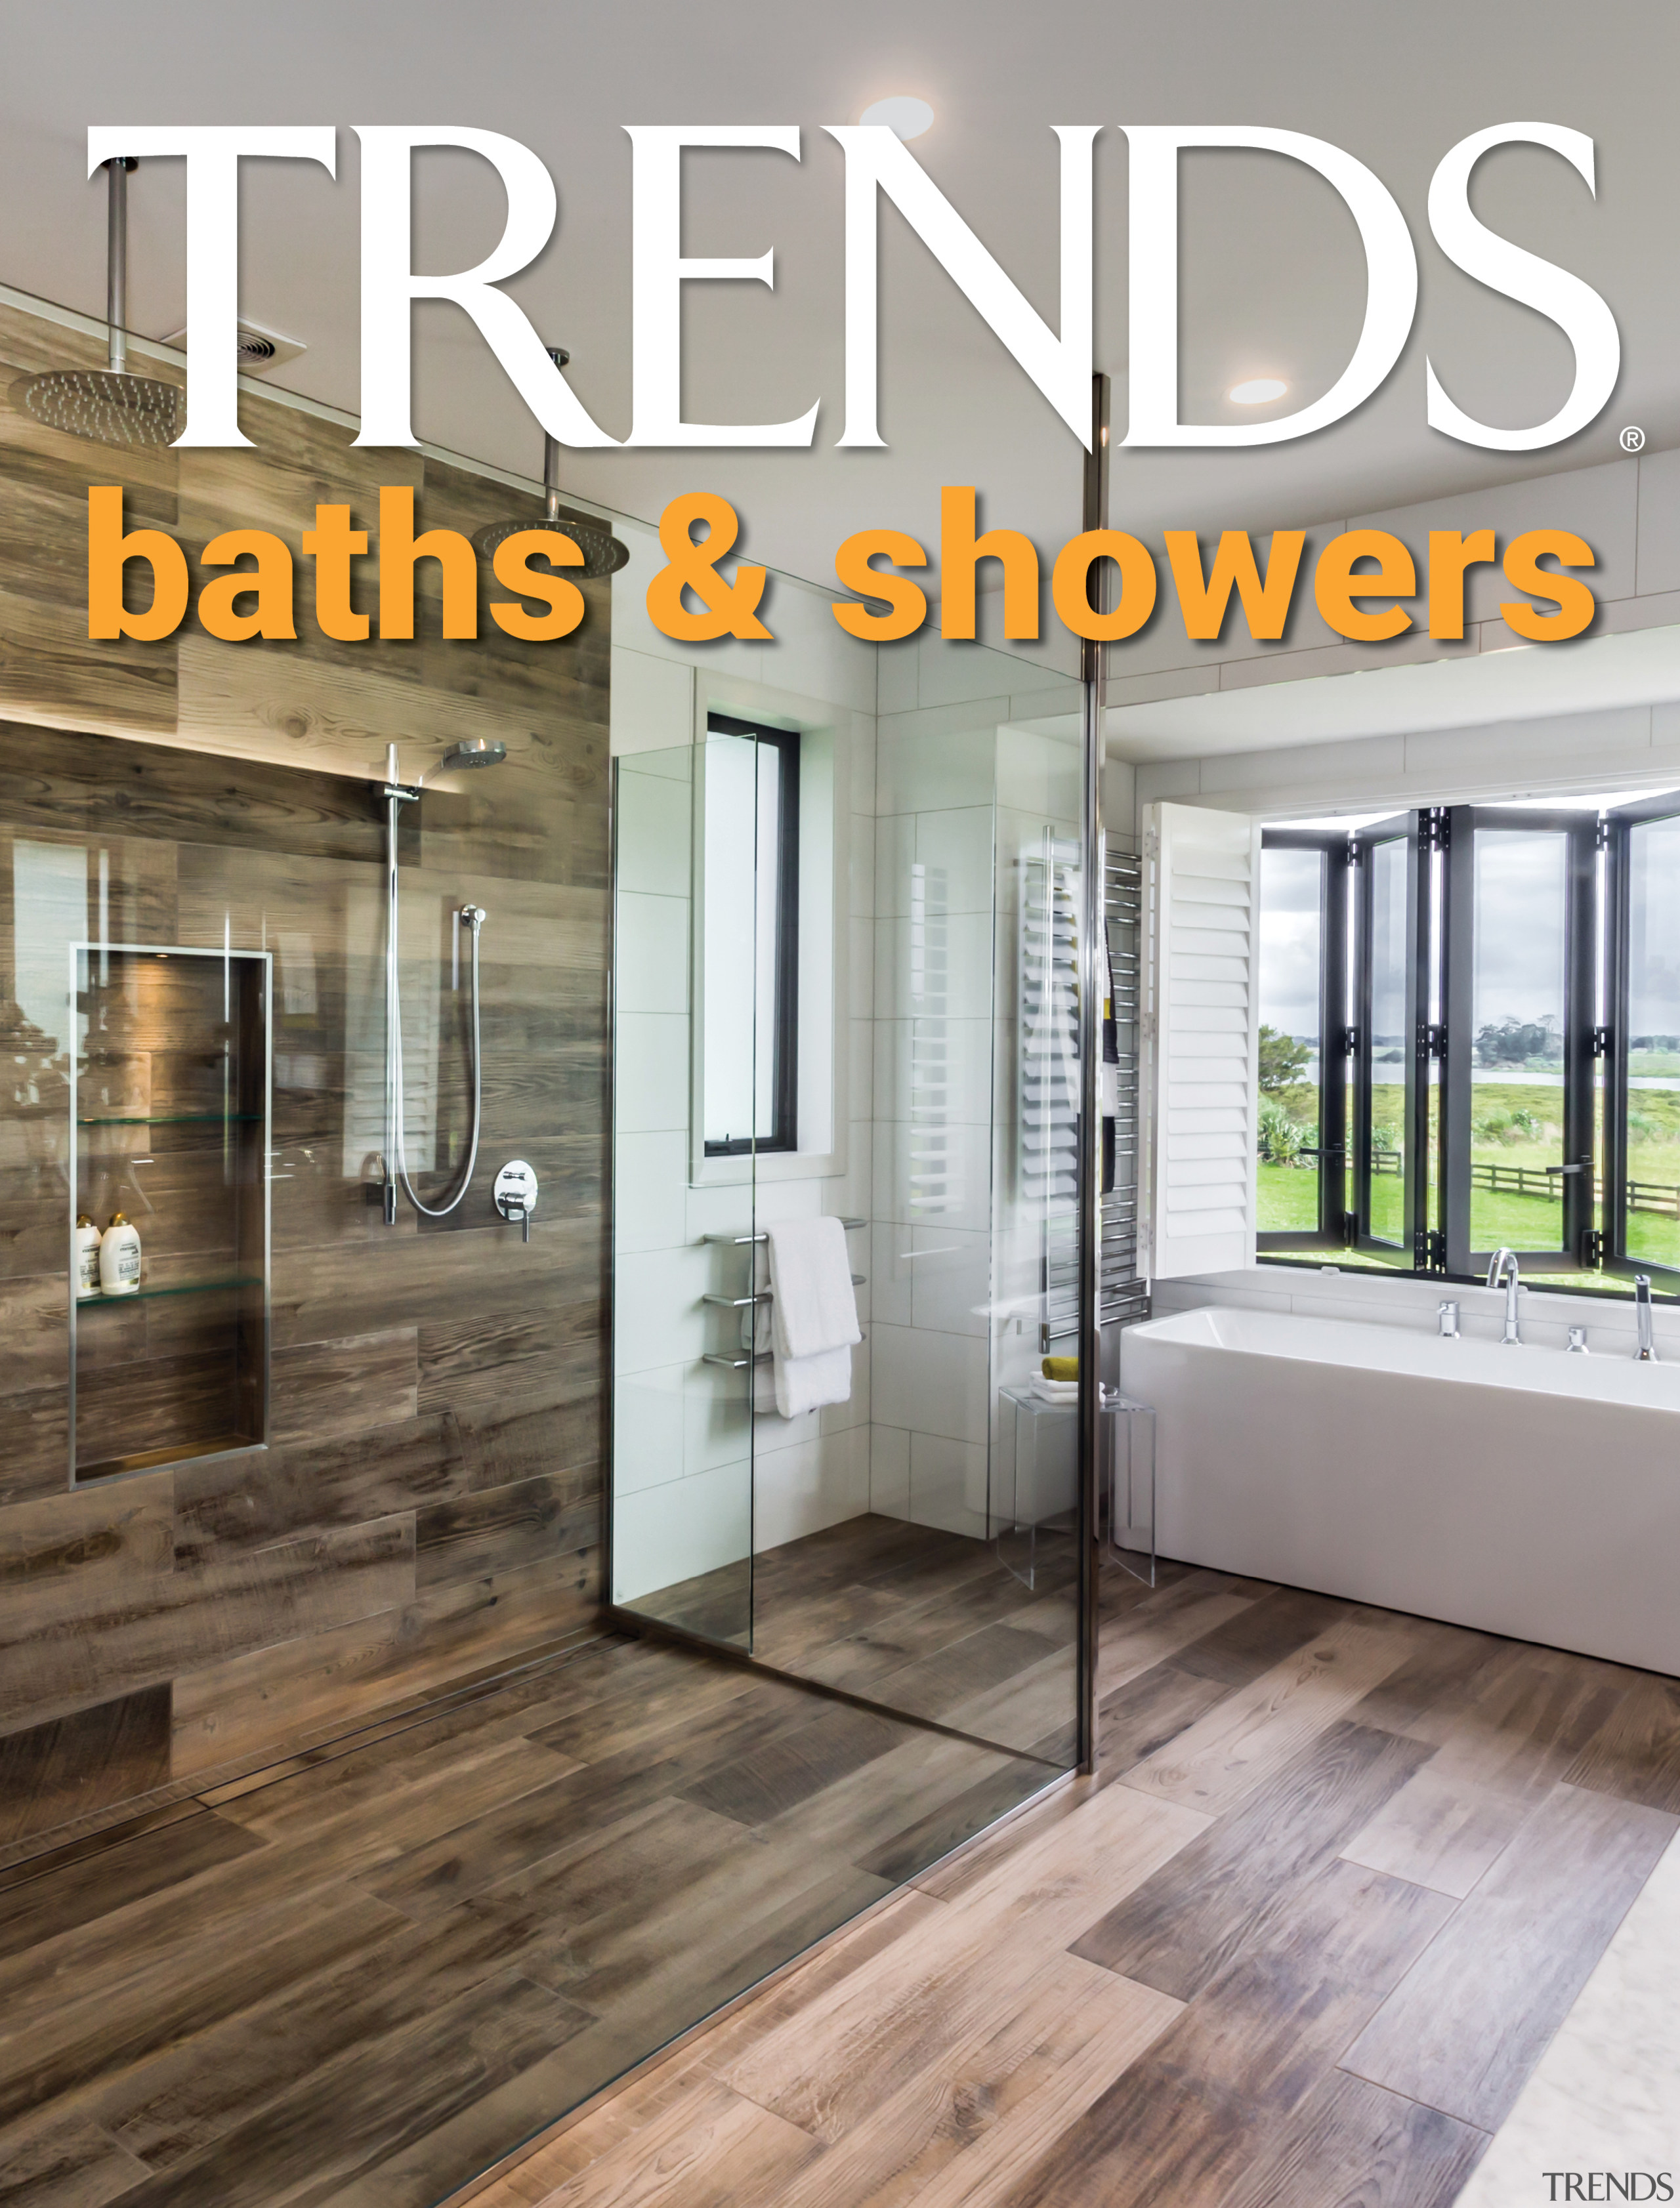 TRENDS MINI COVER baths showers -